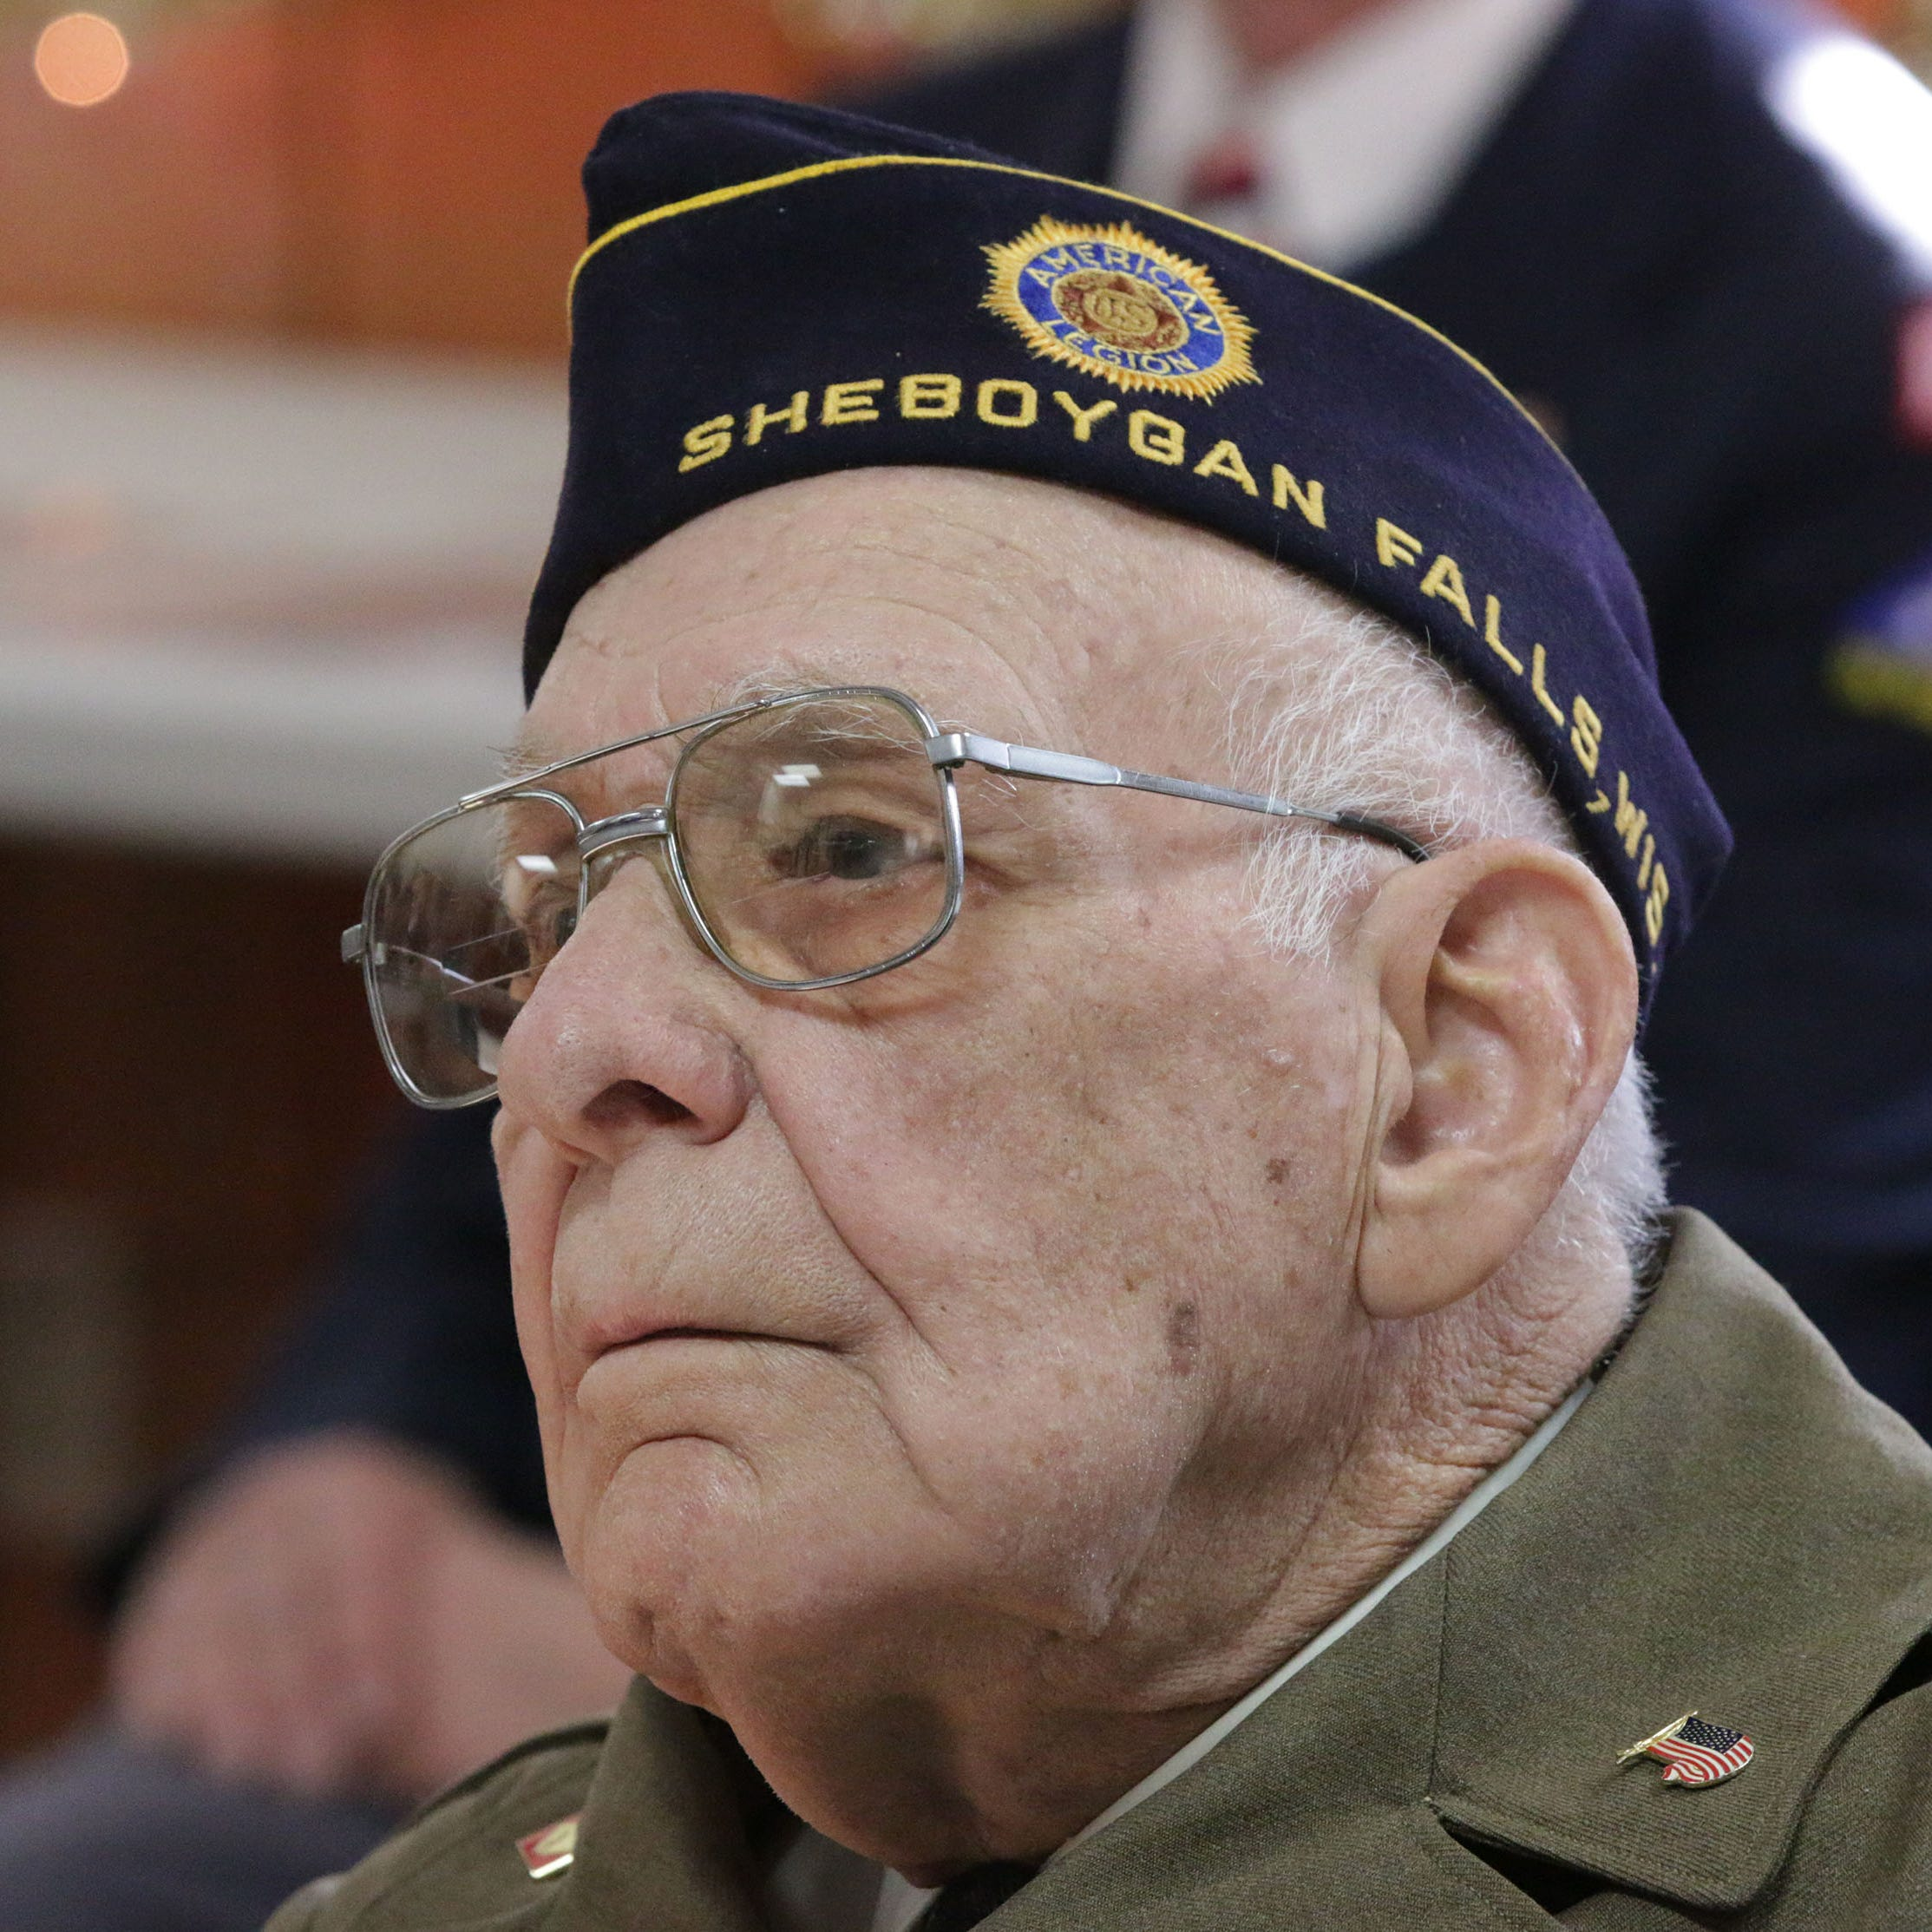 Edgar Kuhlow, Sheboygan Falls WWII veteran and POW, dead at 100